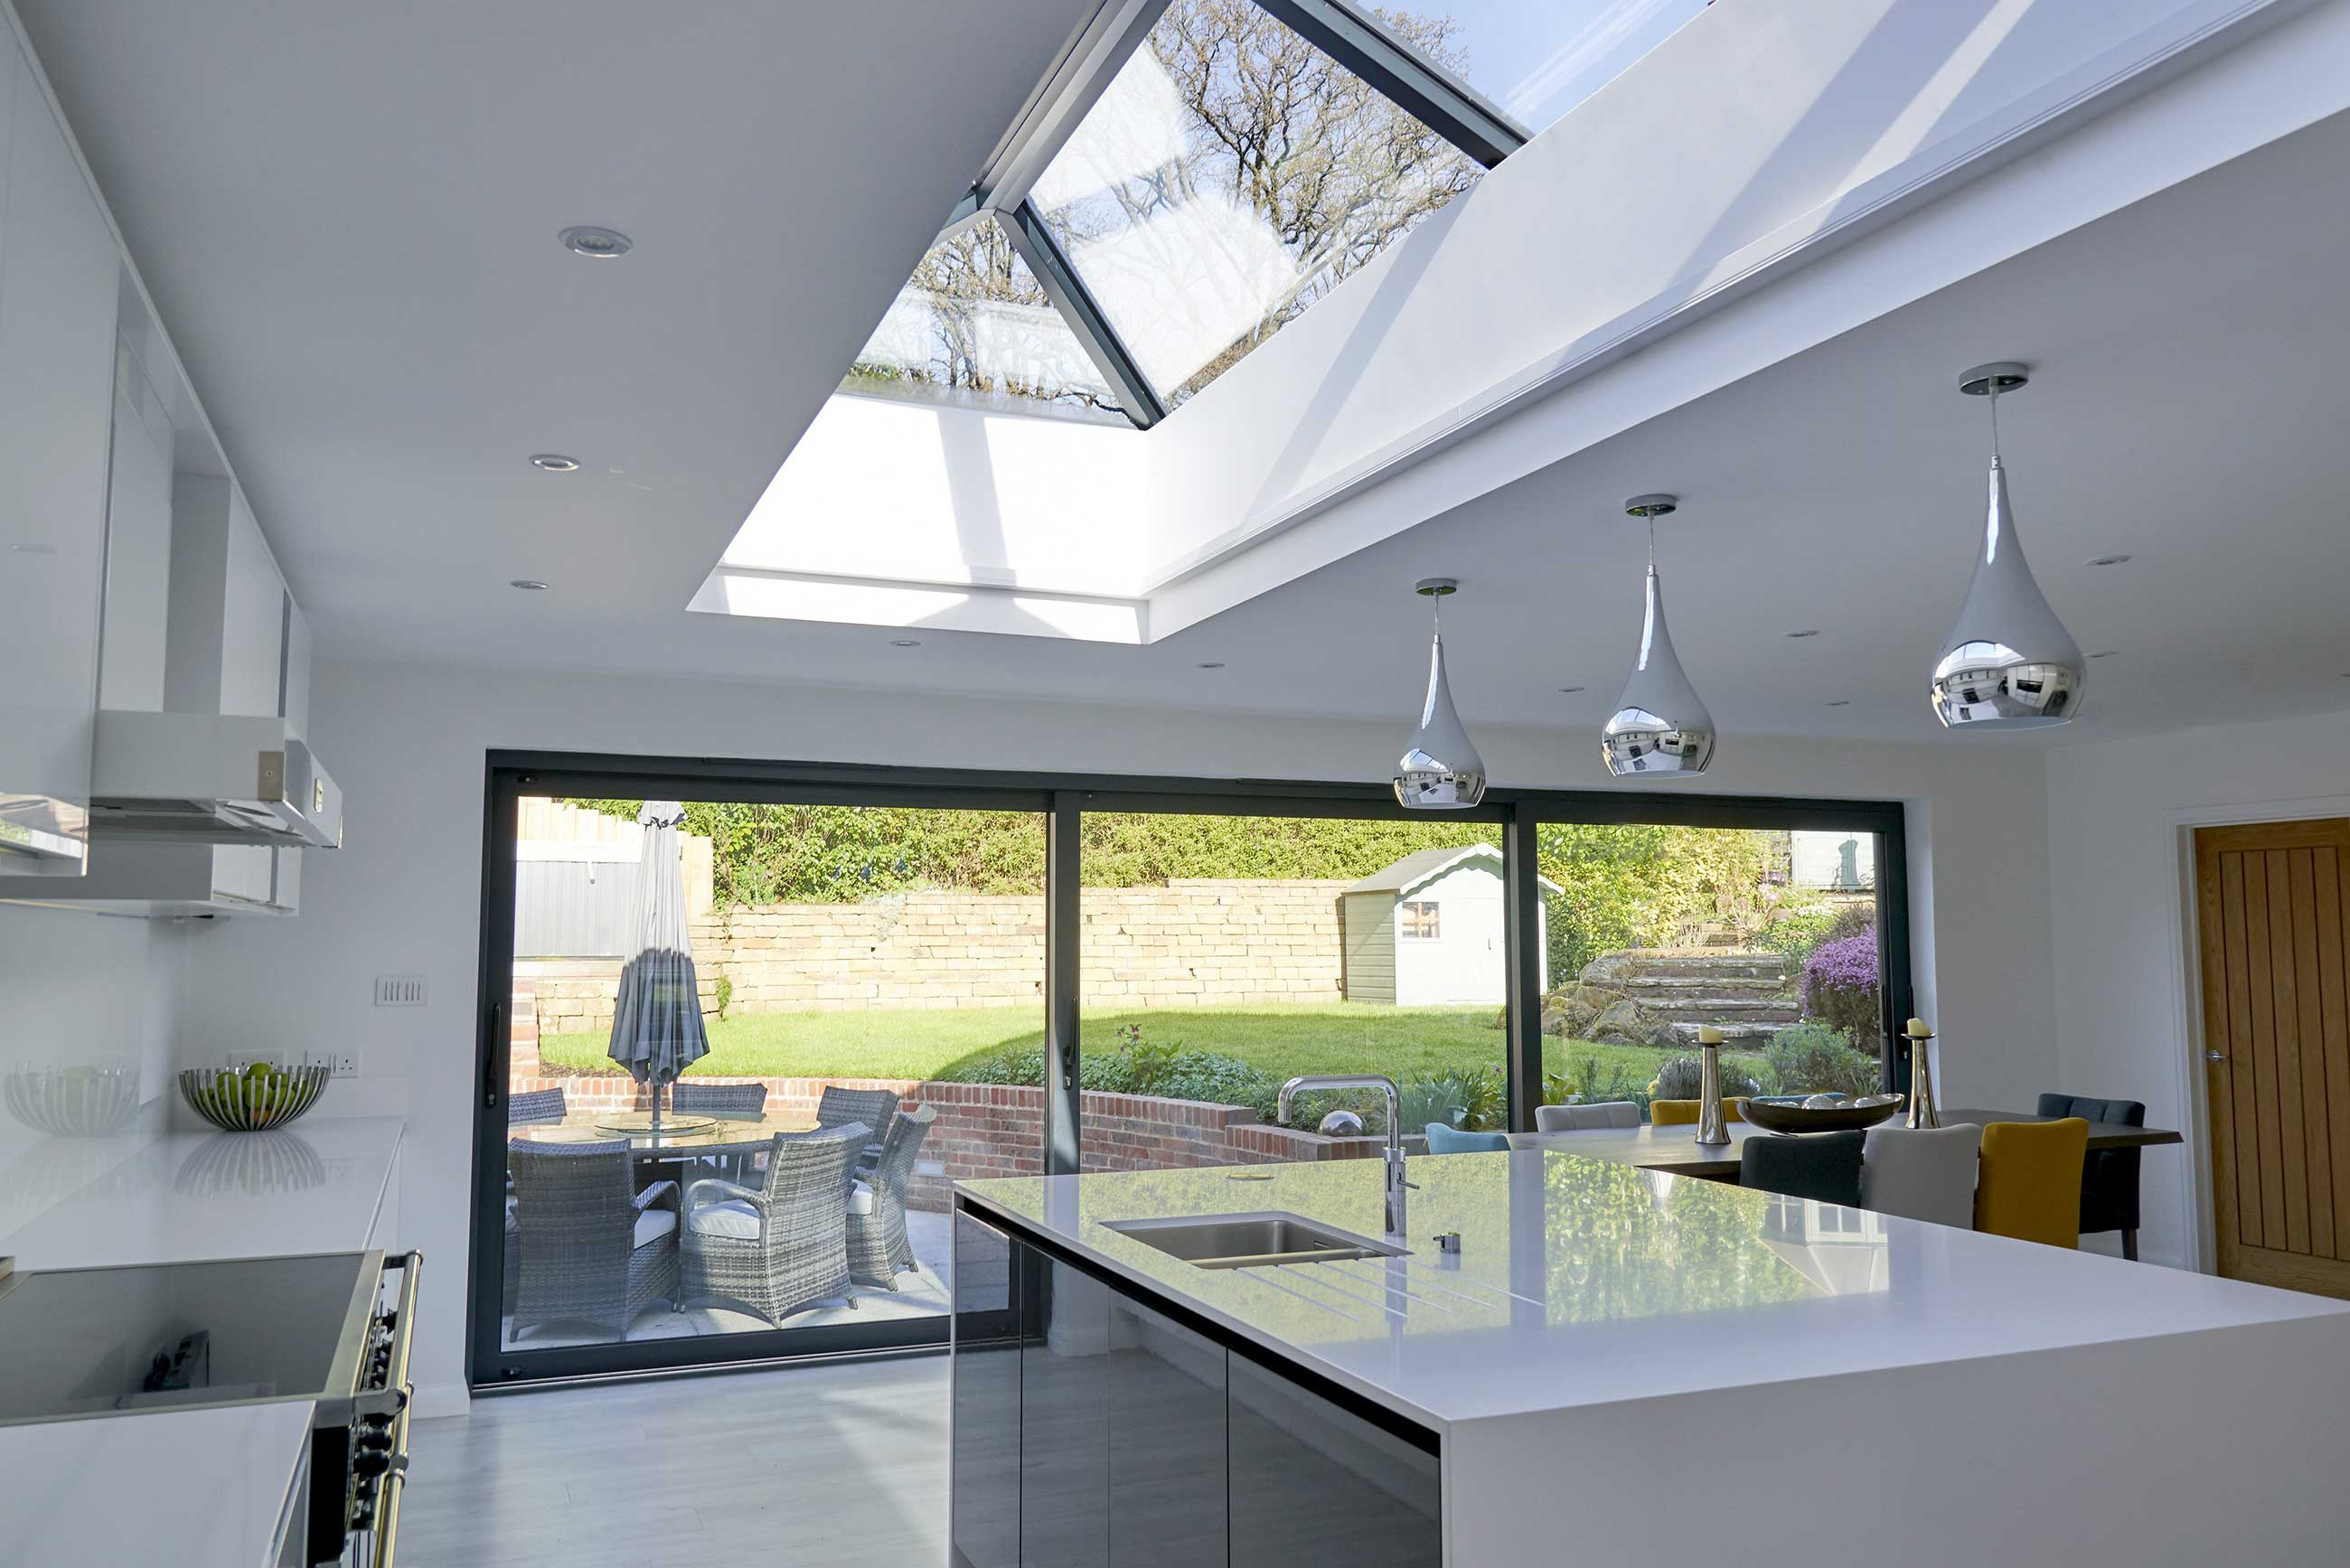 House Extension Ideas  House Extension Designs  House Extension Cost